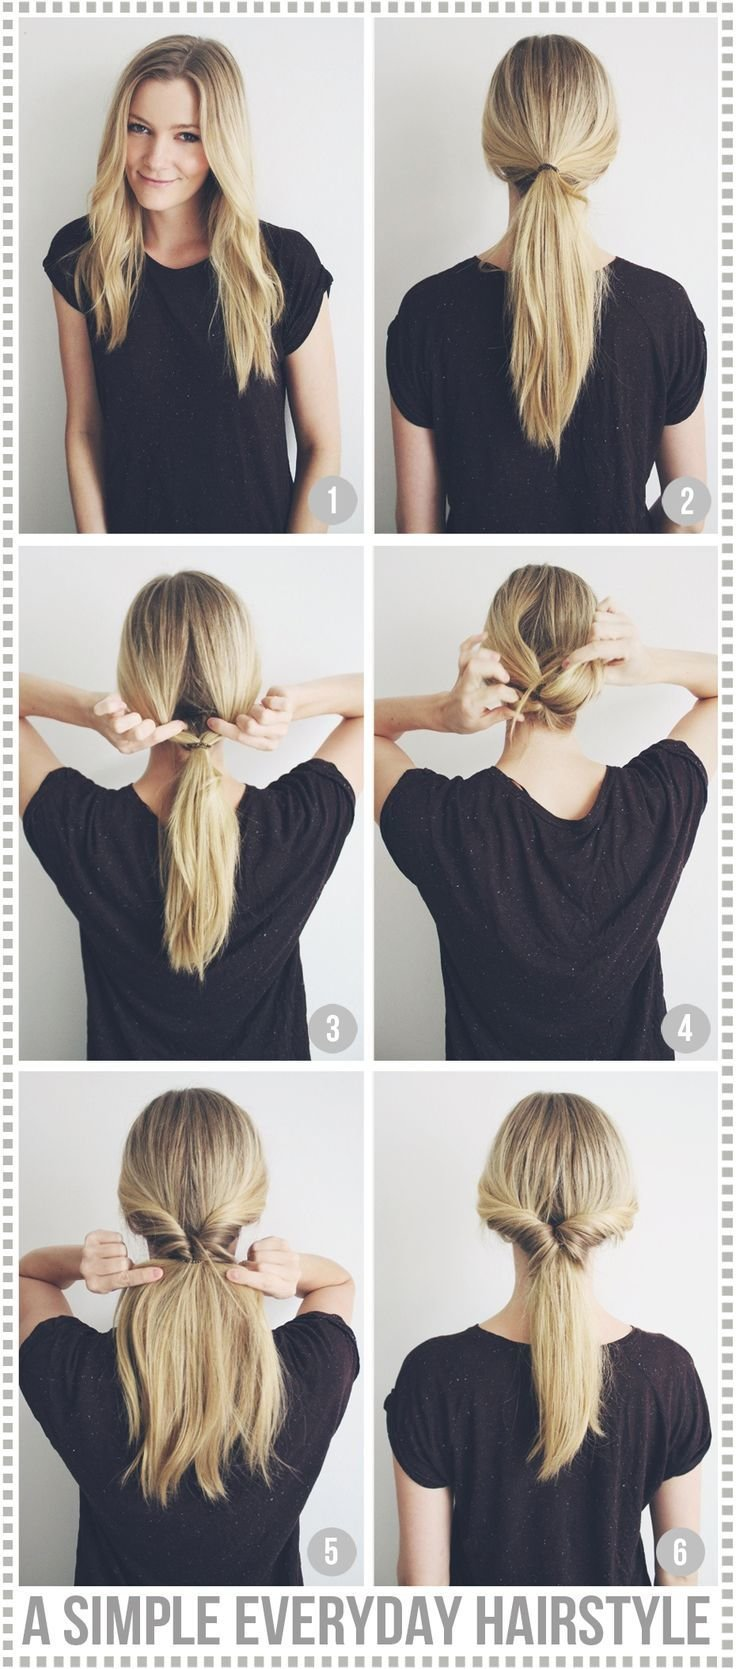 The Best A Simple Everyday Hairstyle Passions For Fashion Nice Pictures